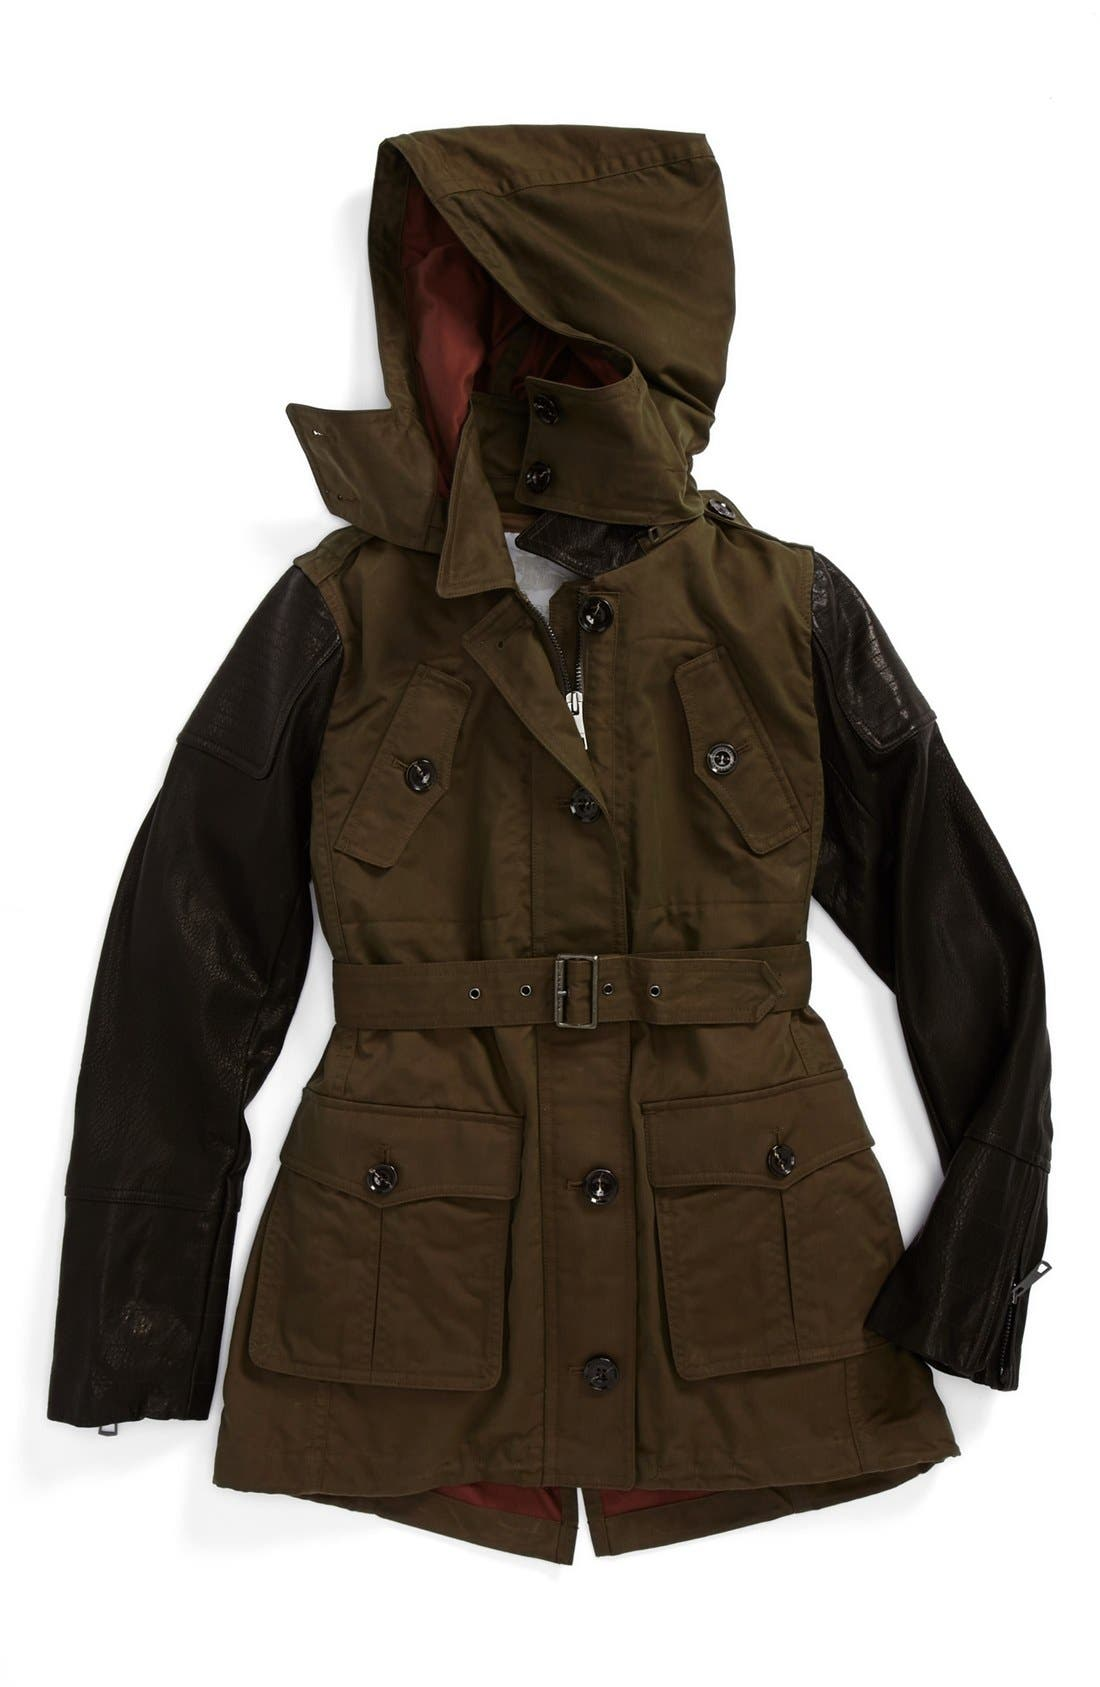 Alternate Image 1 Selected - Burberry 'Nickleton' Jacket (Little Girls & Big Girls)